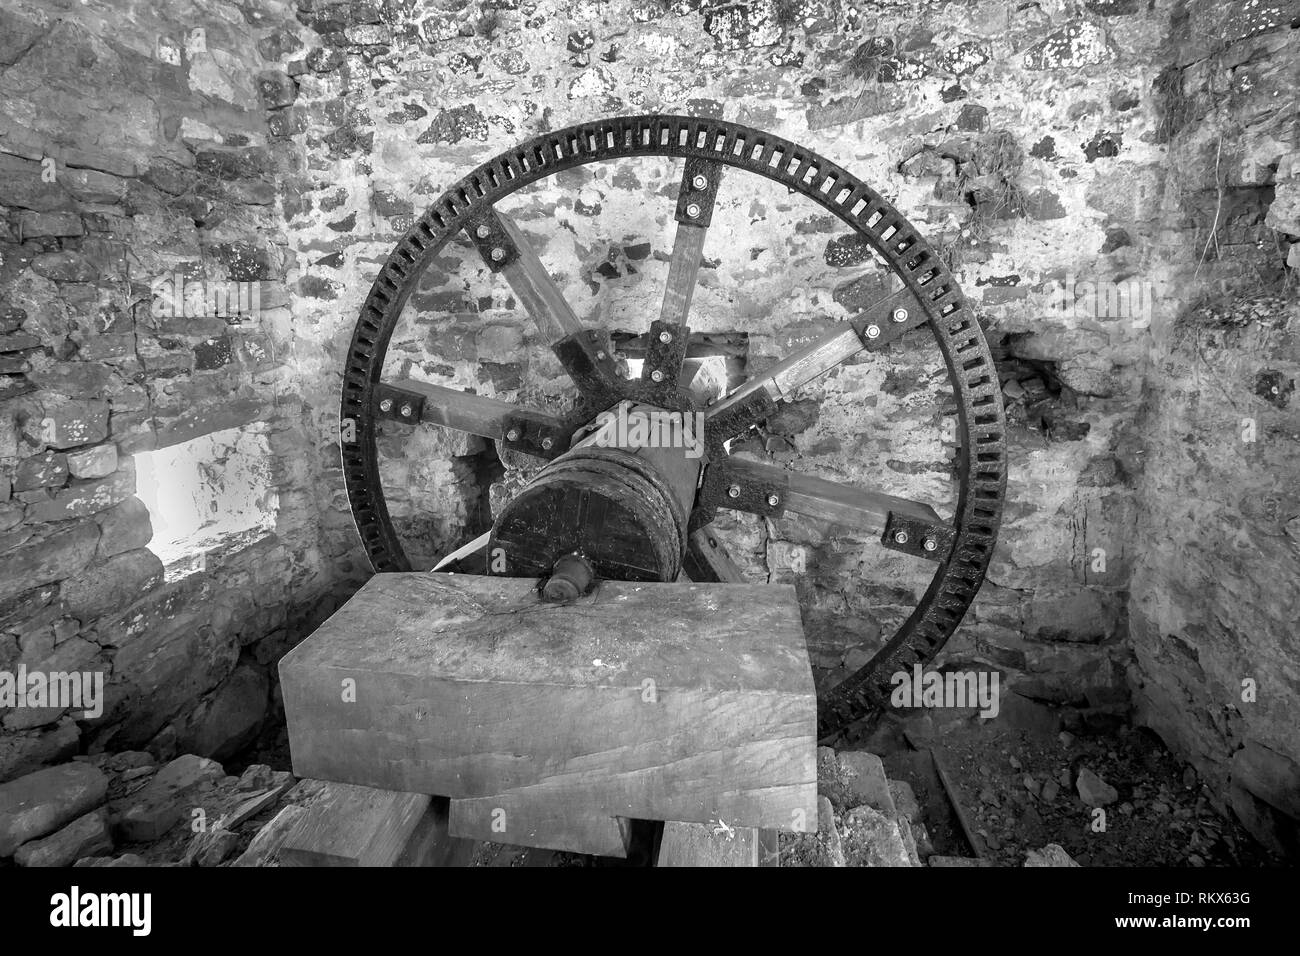 An infrared monochrome image of the internal gearwheel of the Flour and grain Mill on Alderney, Channel Islands. - Stock Image